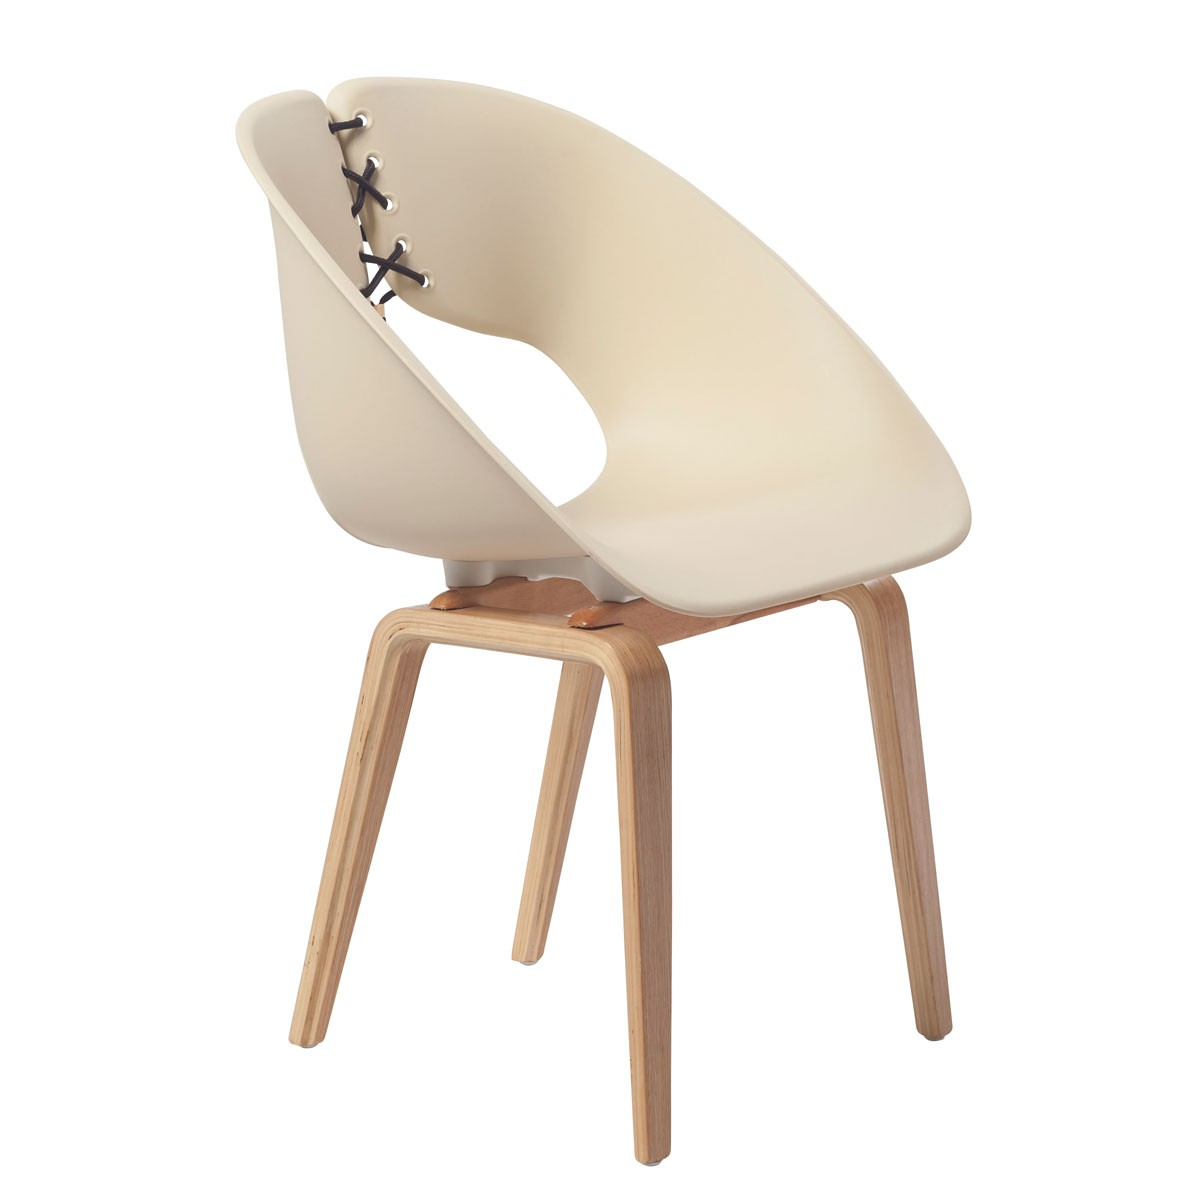 Molded Plastic Chair in Beige with Wood Legs - (YMG-9303B-1)